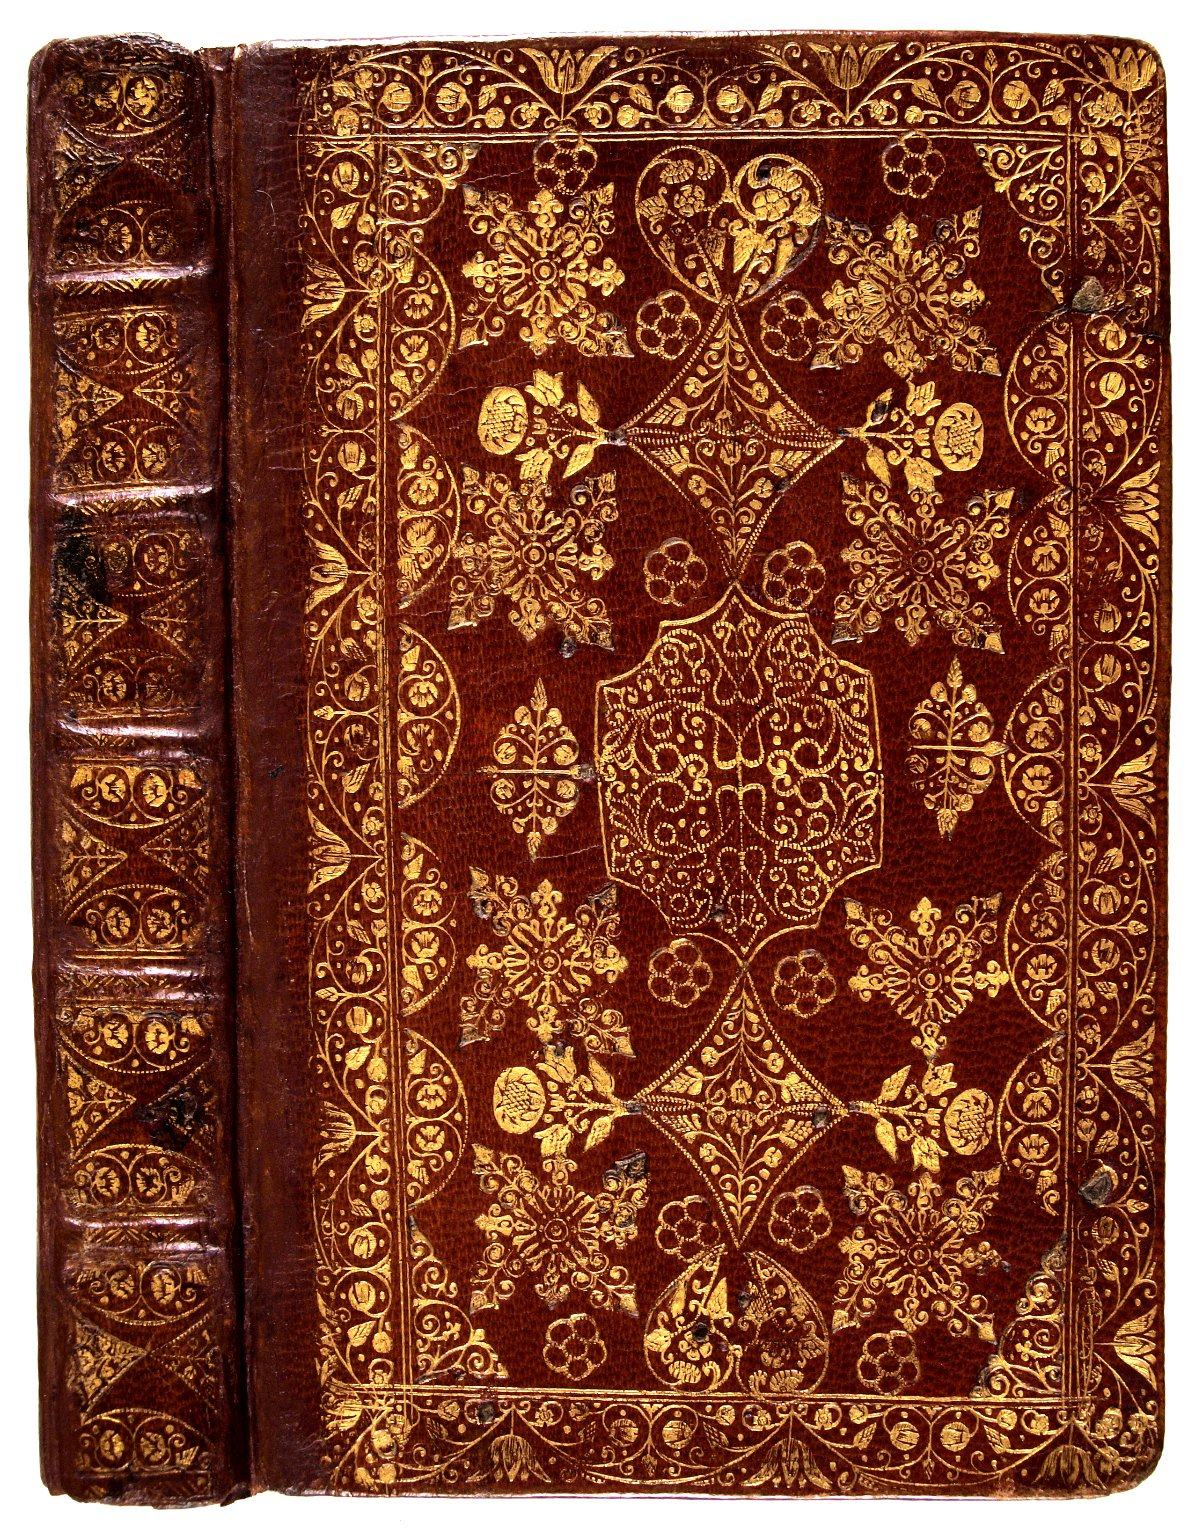 Front cover and spine, B3152.